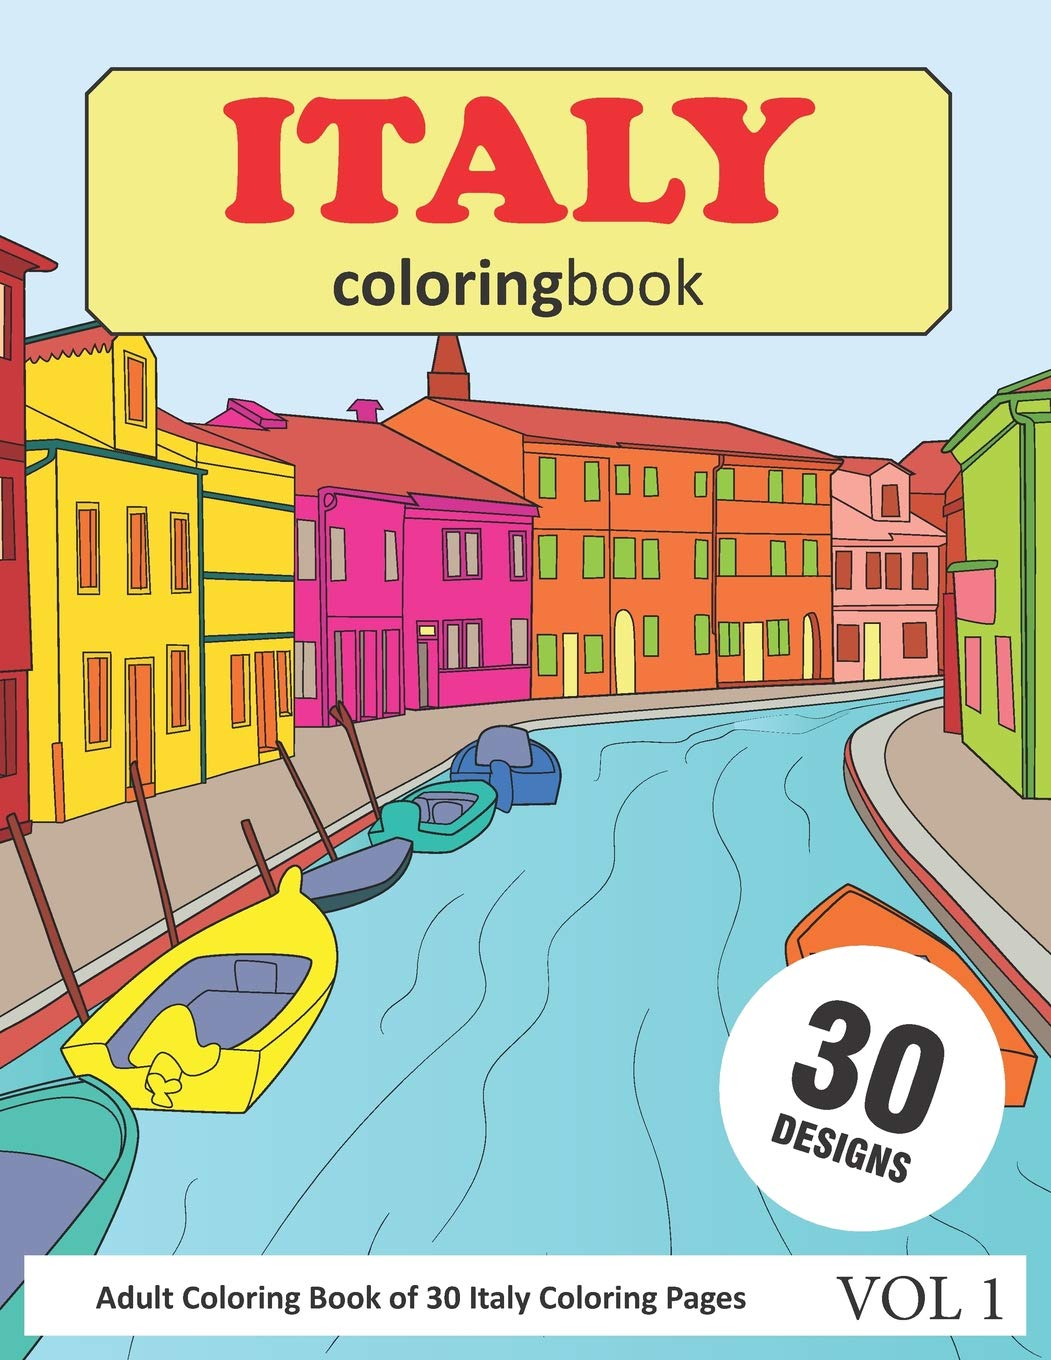 Amazon Com Italy Coloring Book 30 Coloring Pages Of Italy Designs In Coloring Book For Adults Vol 1 9781726642743 Rai Sonia Books